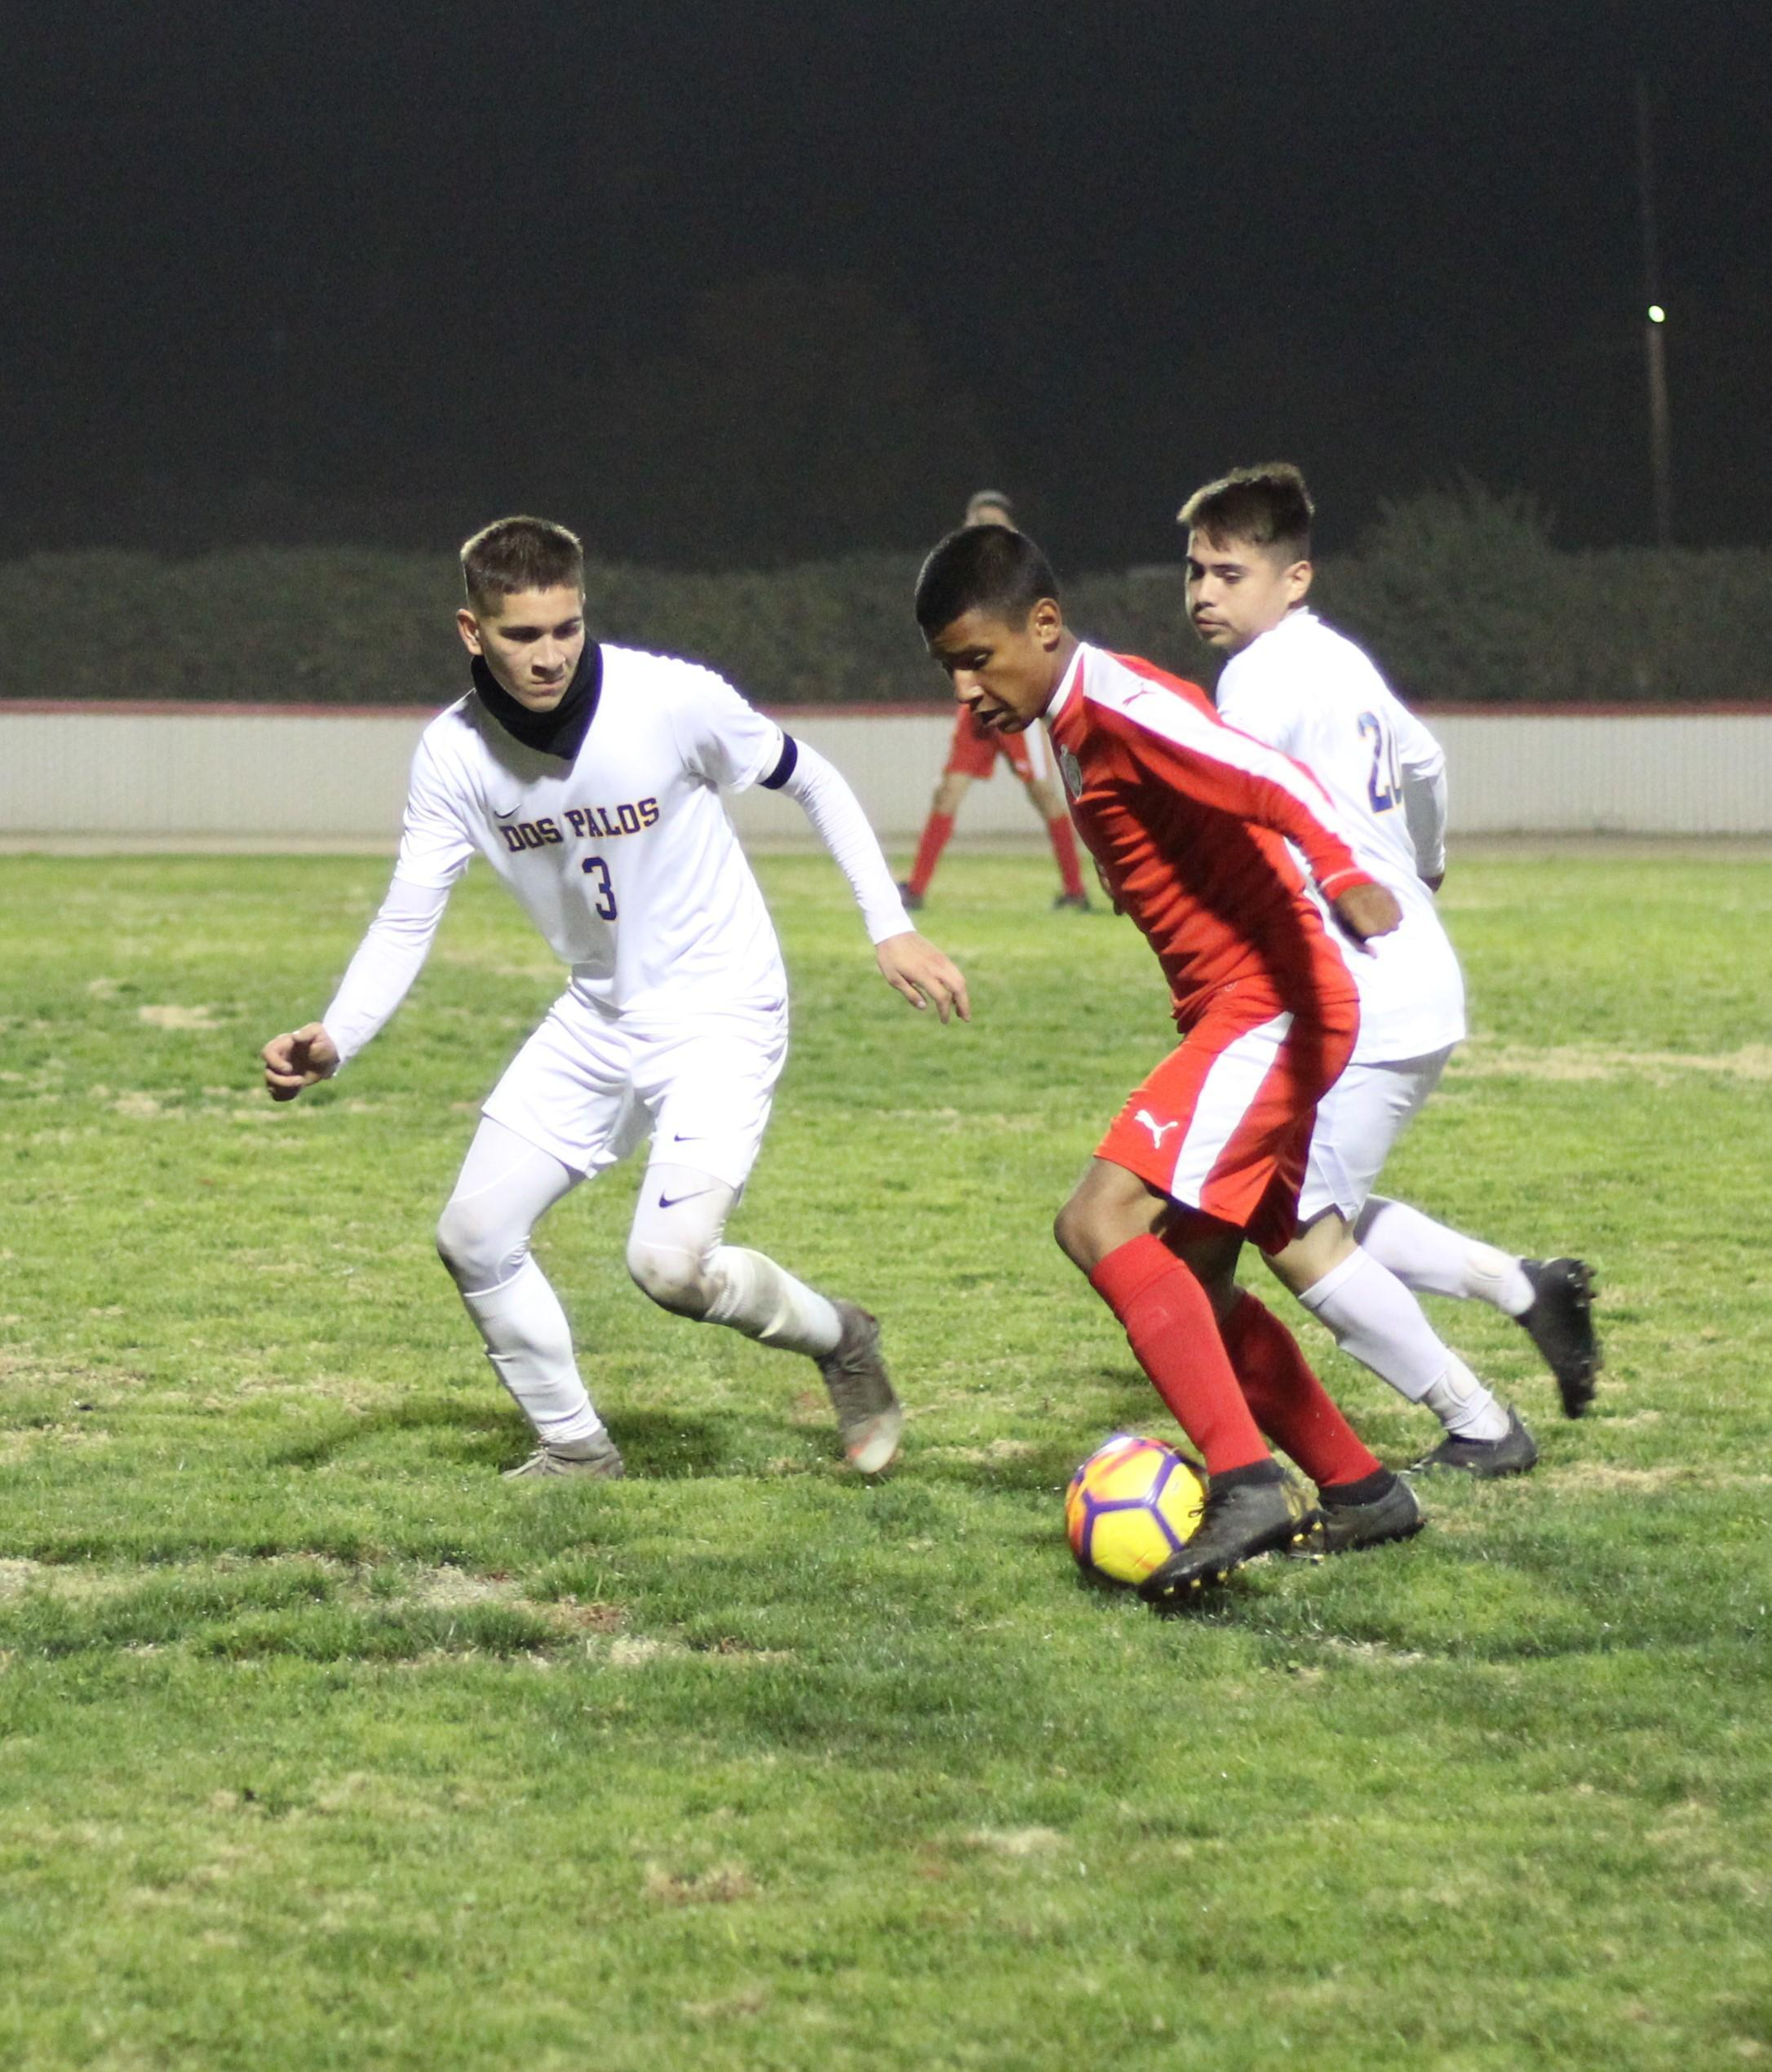 Cesar Galvan with the ball